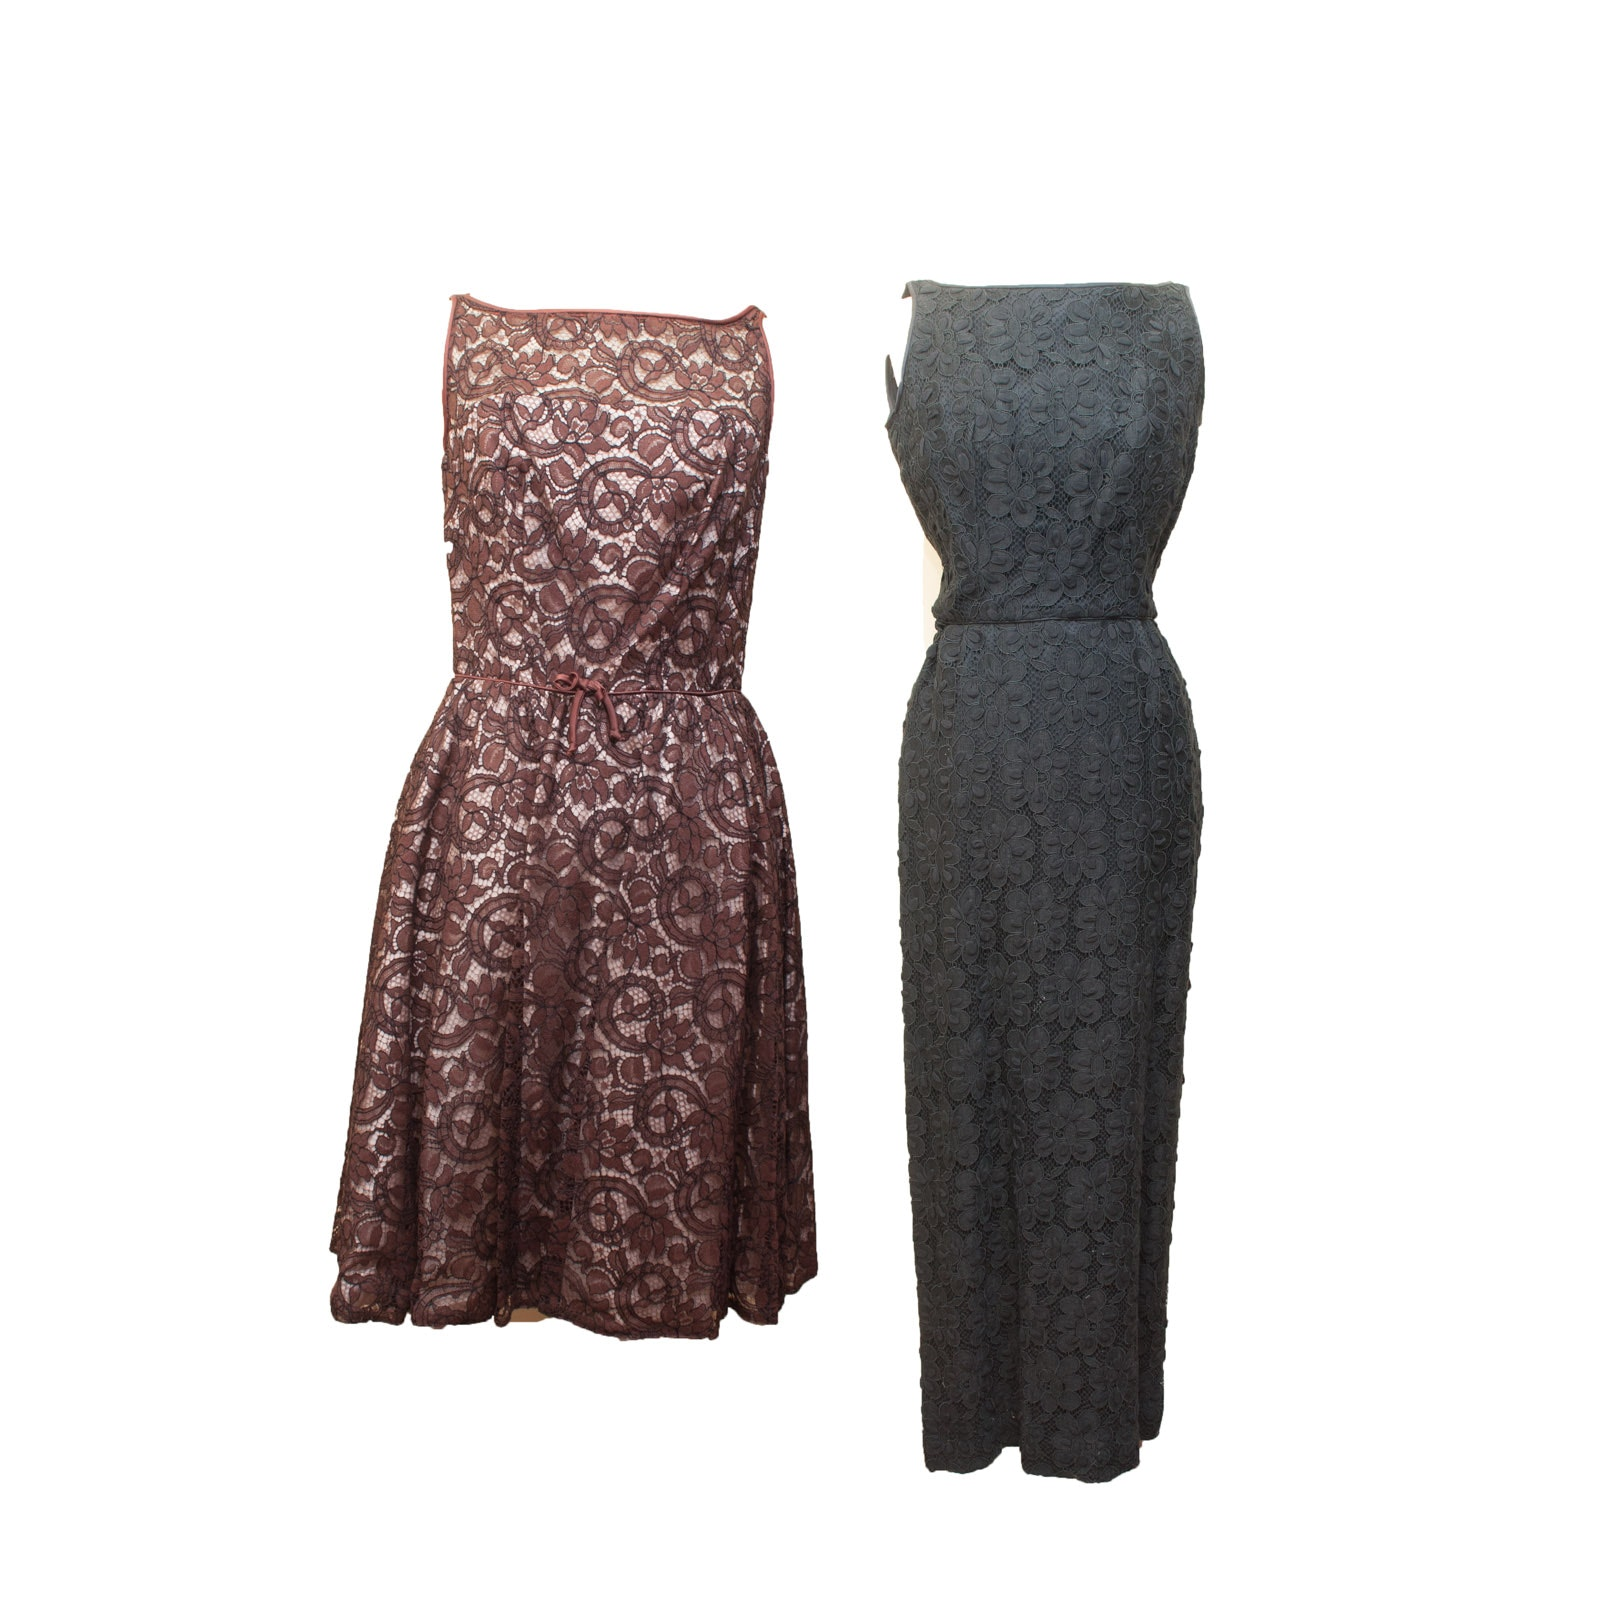 Pair of 1950s Vintage Lace Sleeveless Evening and Cocktail Dresses